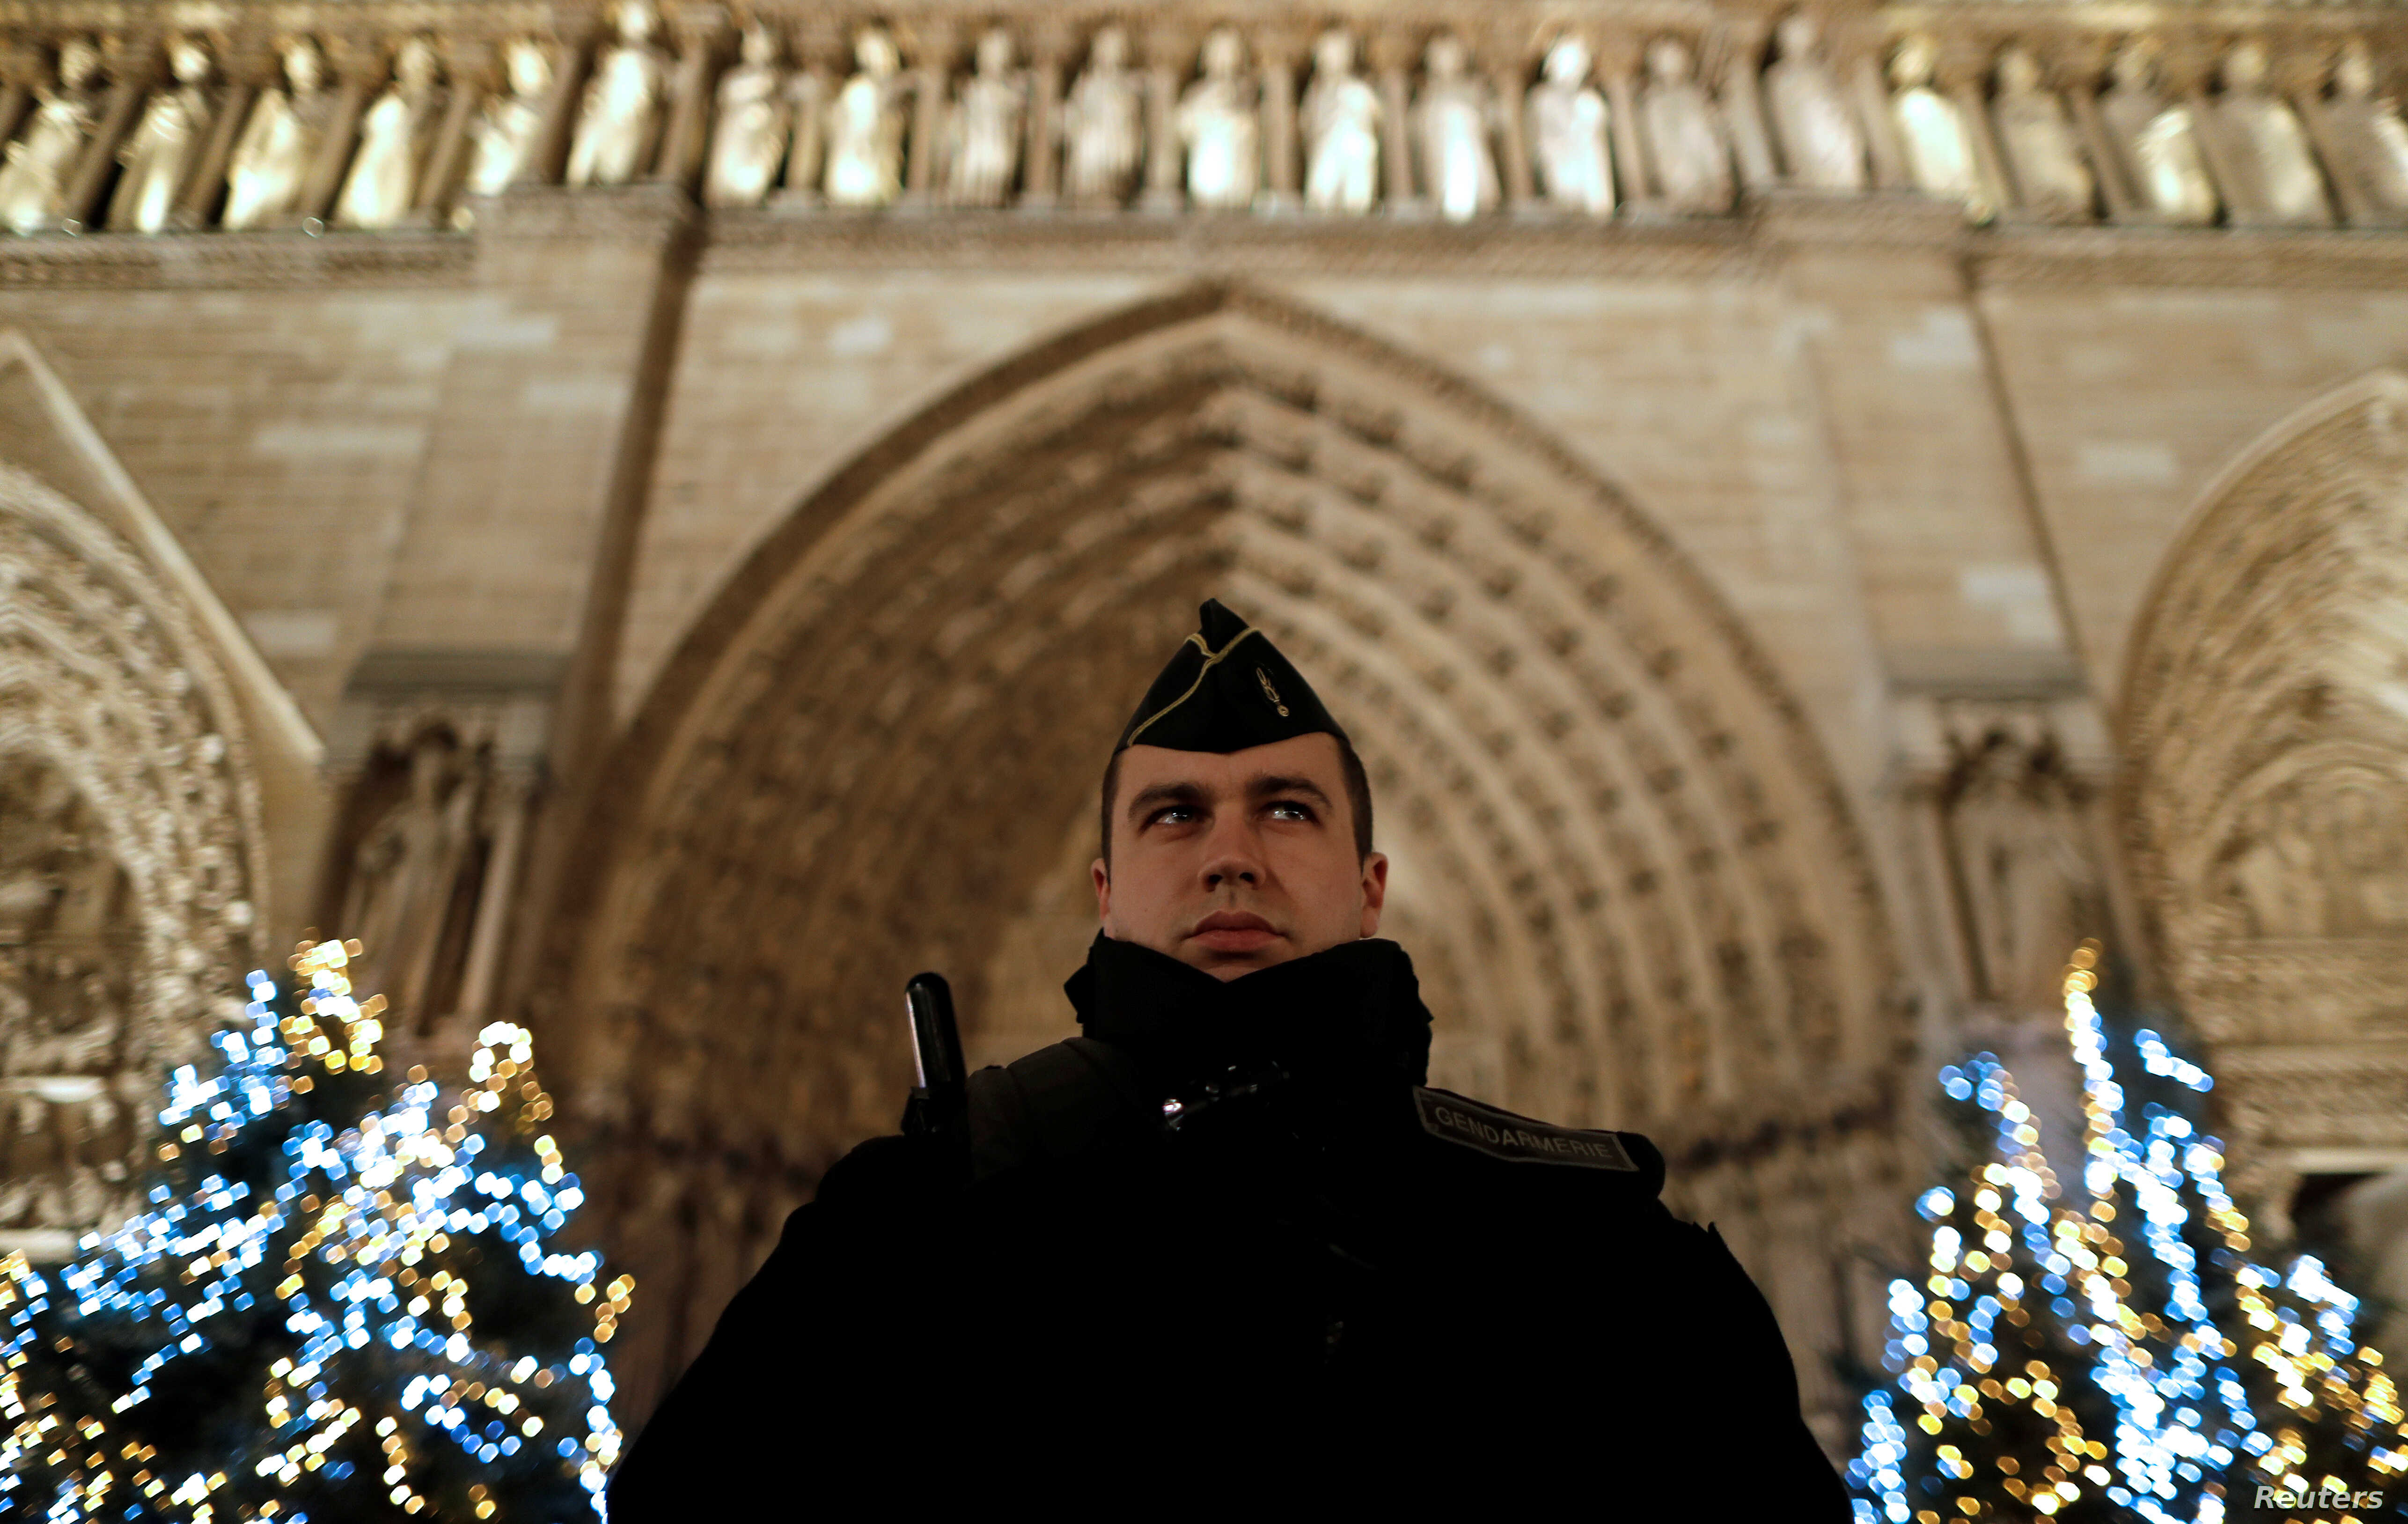 A French gendarme stands guard as heavy police forces secure the access to Notre-Dame cathedral during Christmas celebrations in Paris, France, Dec. 24, 2016.